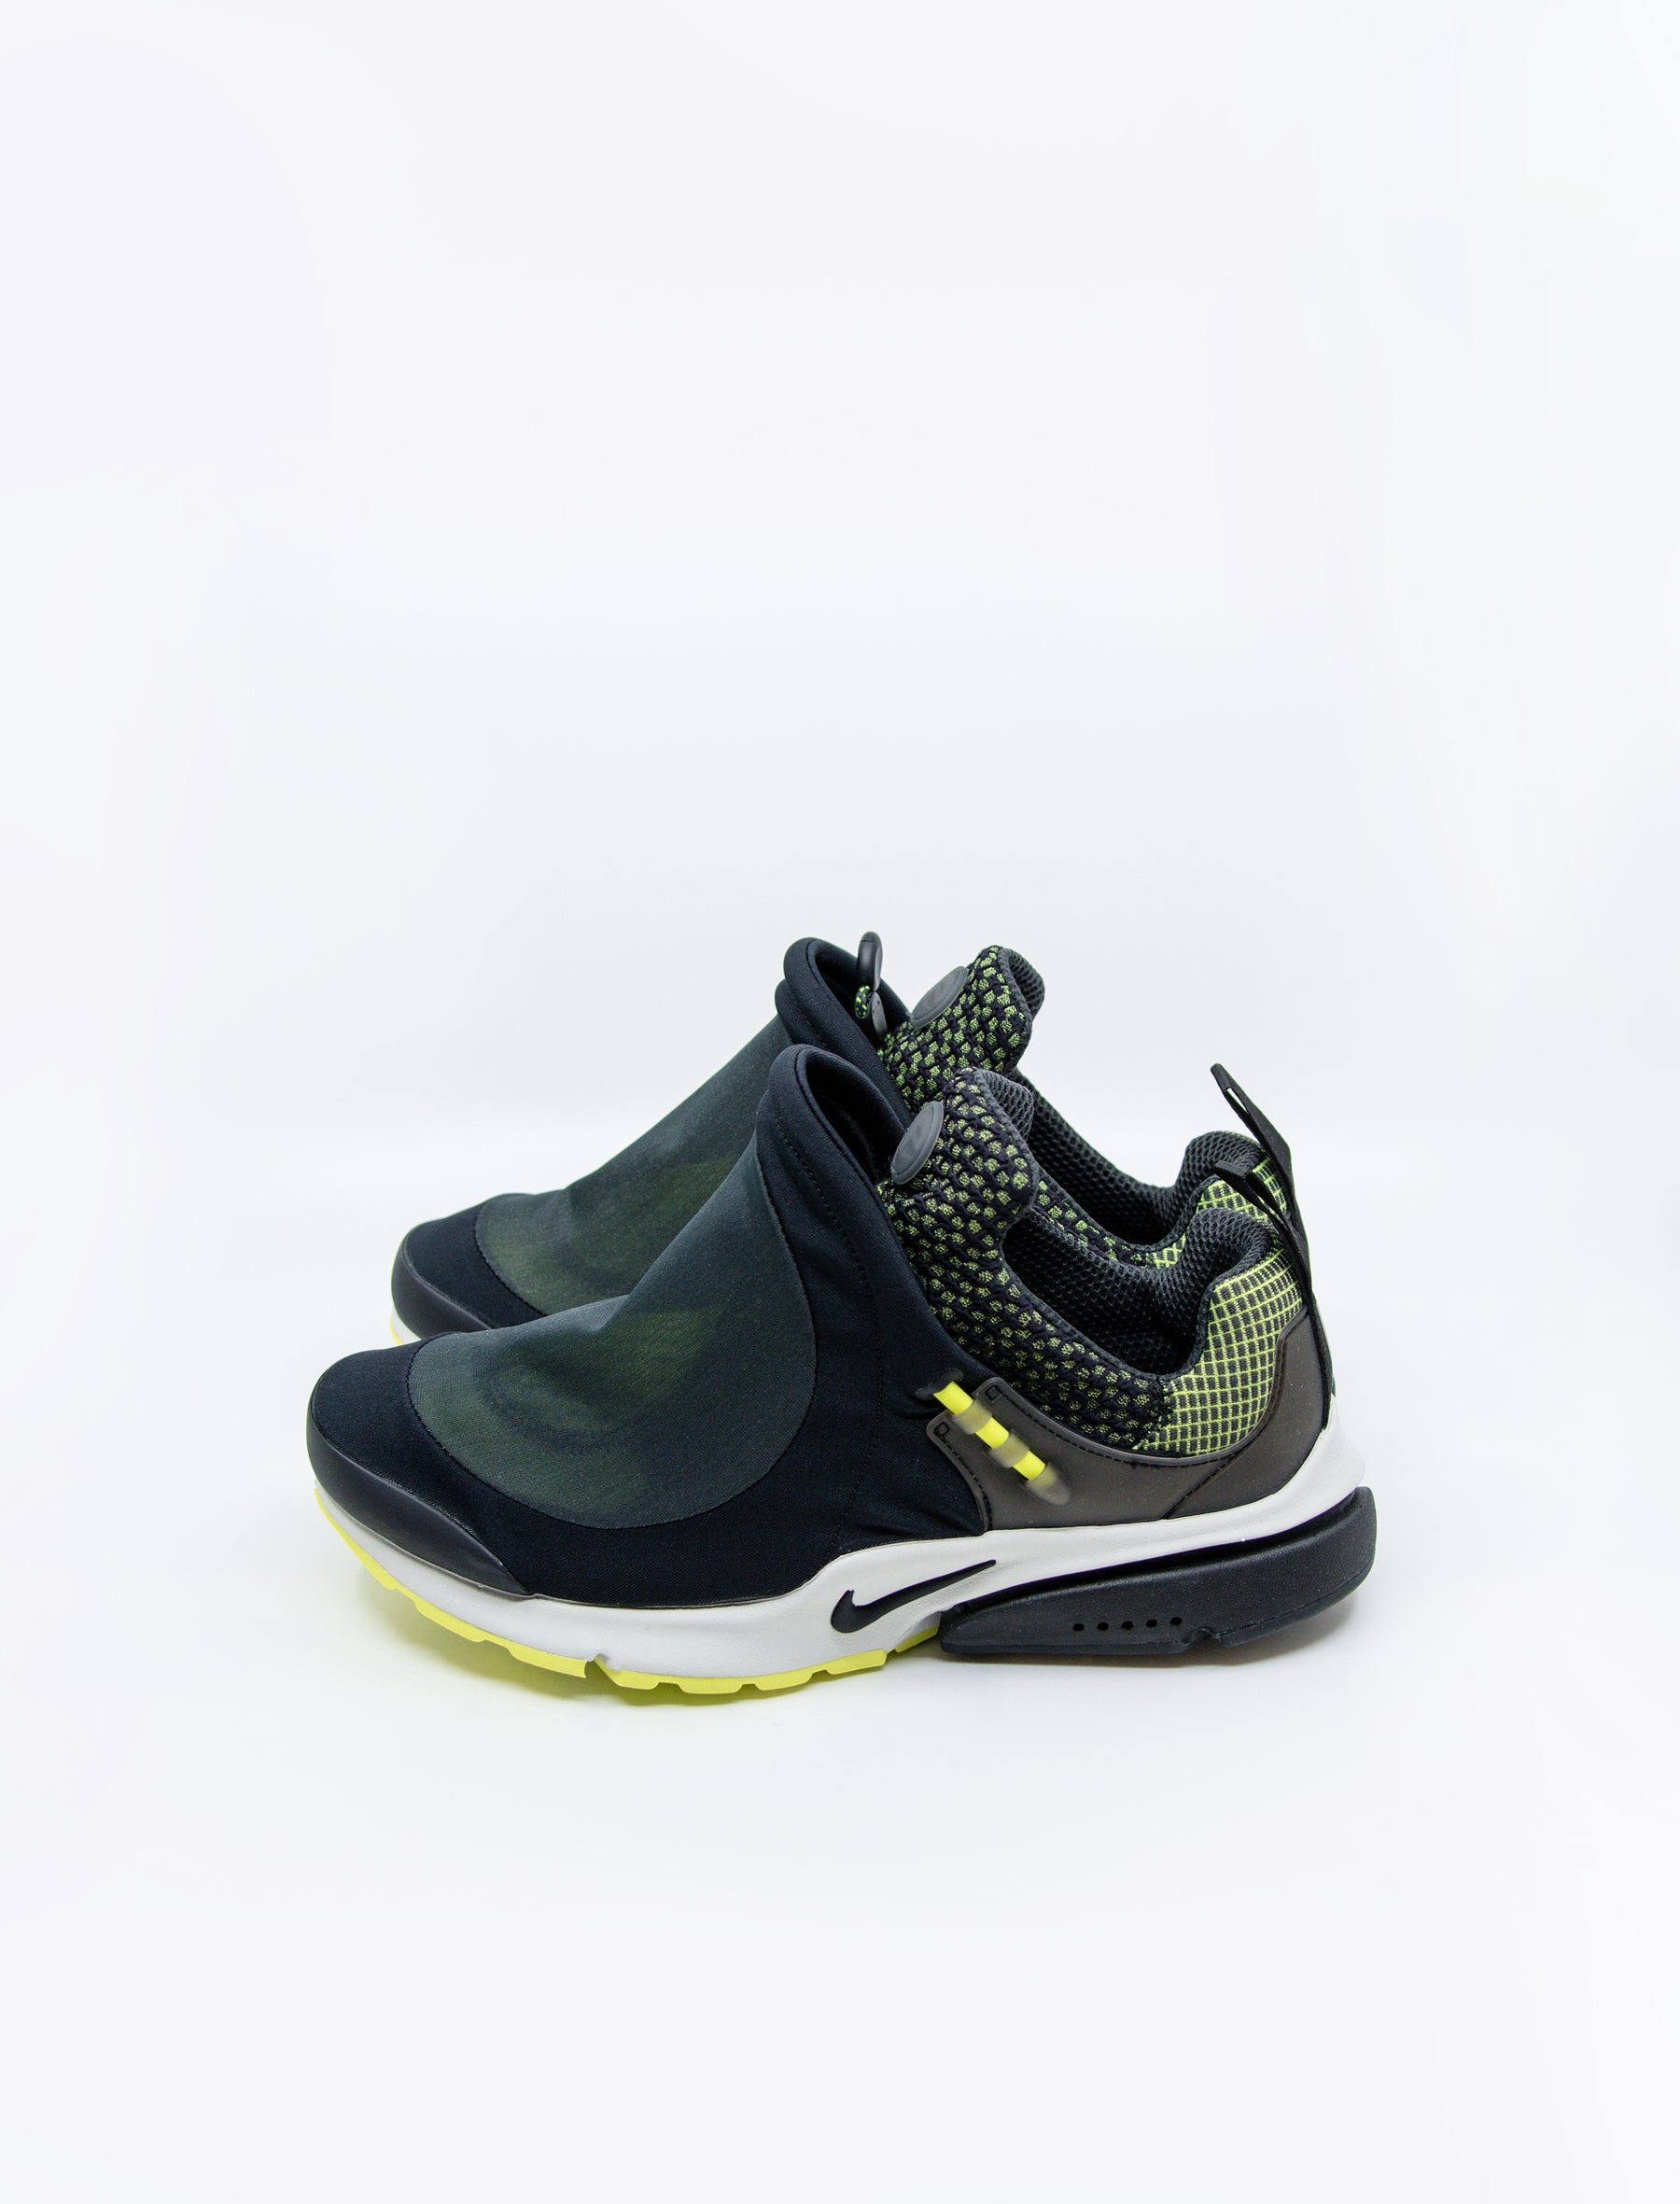 508b162b31 ... CDG Homme Plus Nike Air Presto Foot Tent Anthracite/Lemon/Black ...